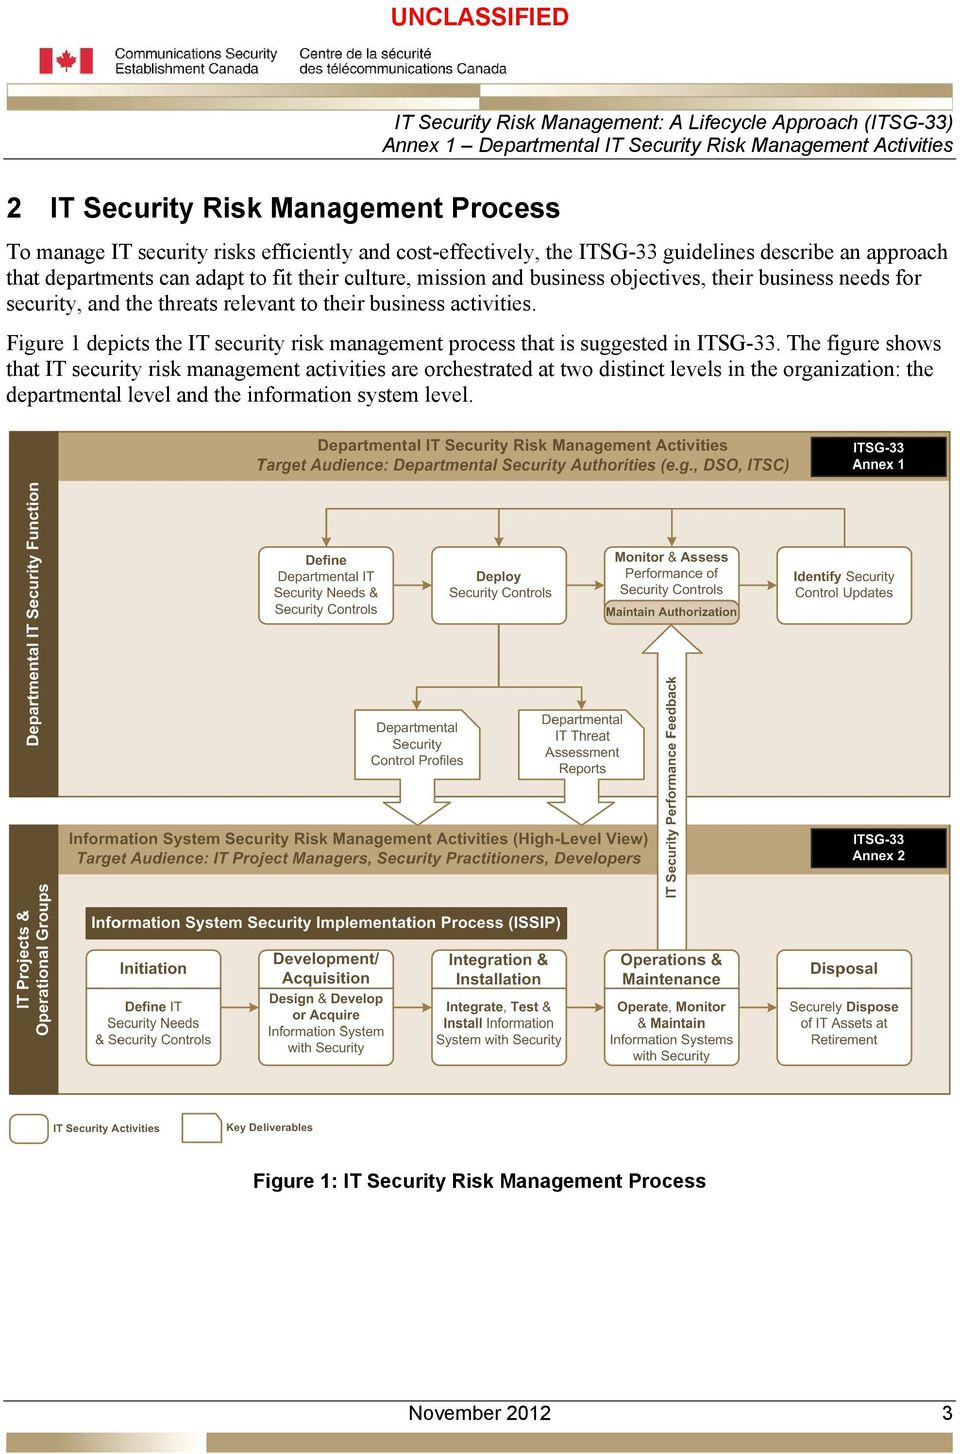 Figure 1 depicts the IT security risk management process that is suggested in ITSG-33.